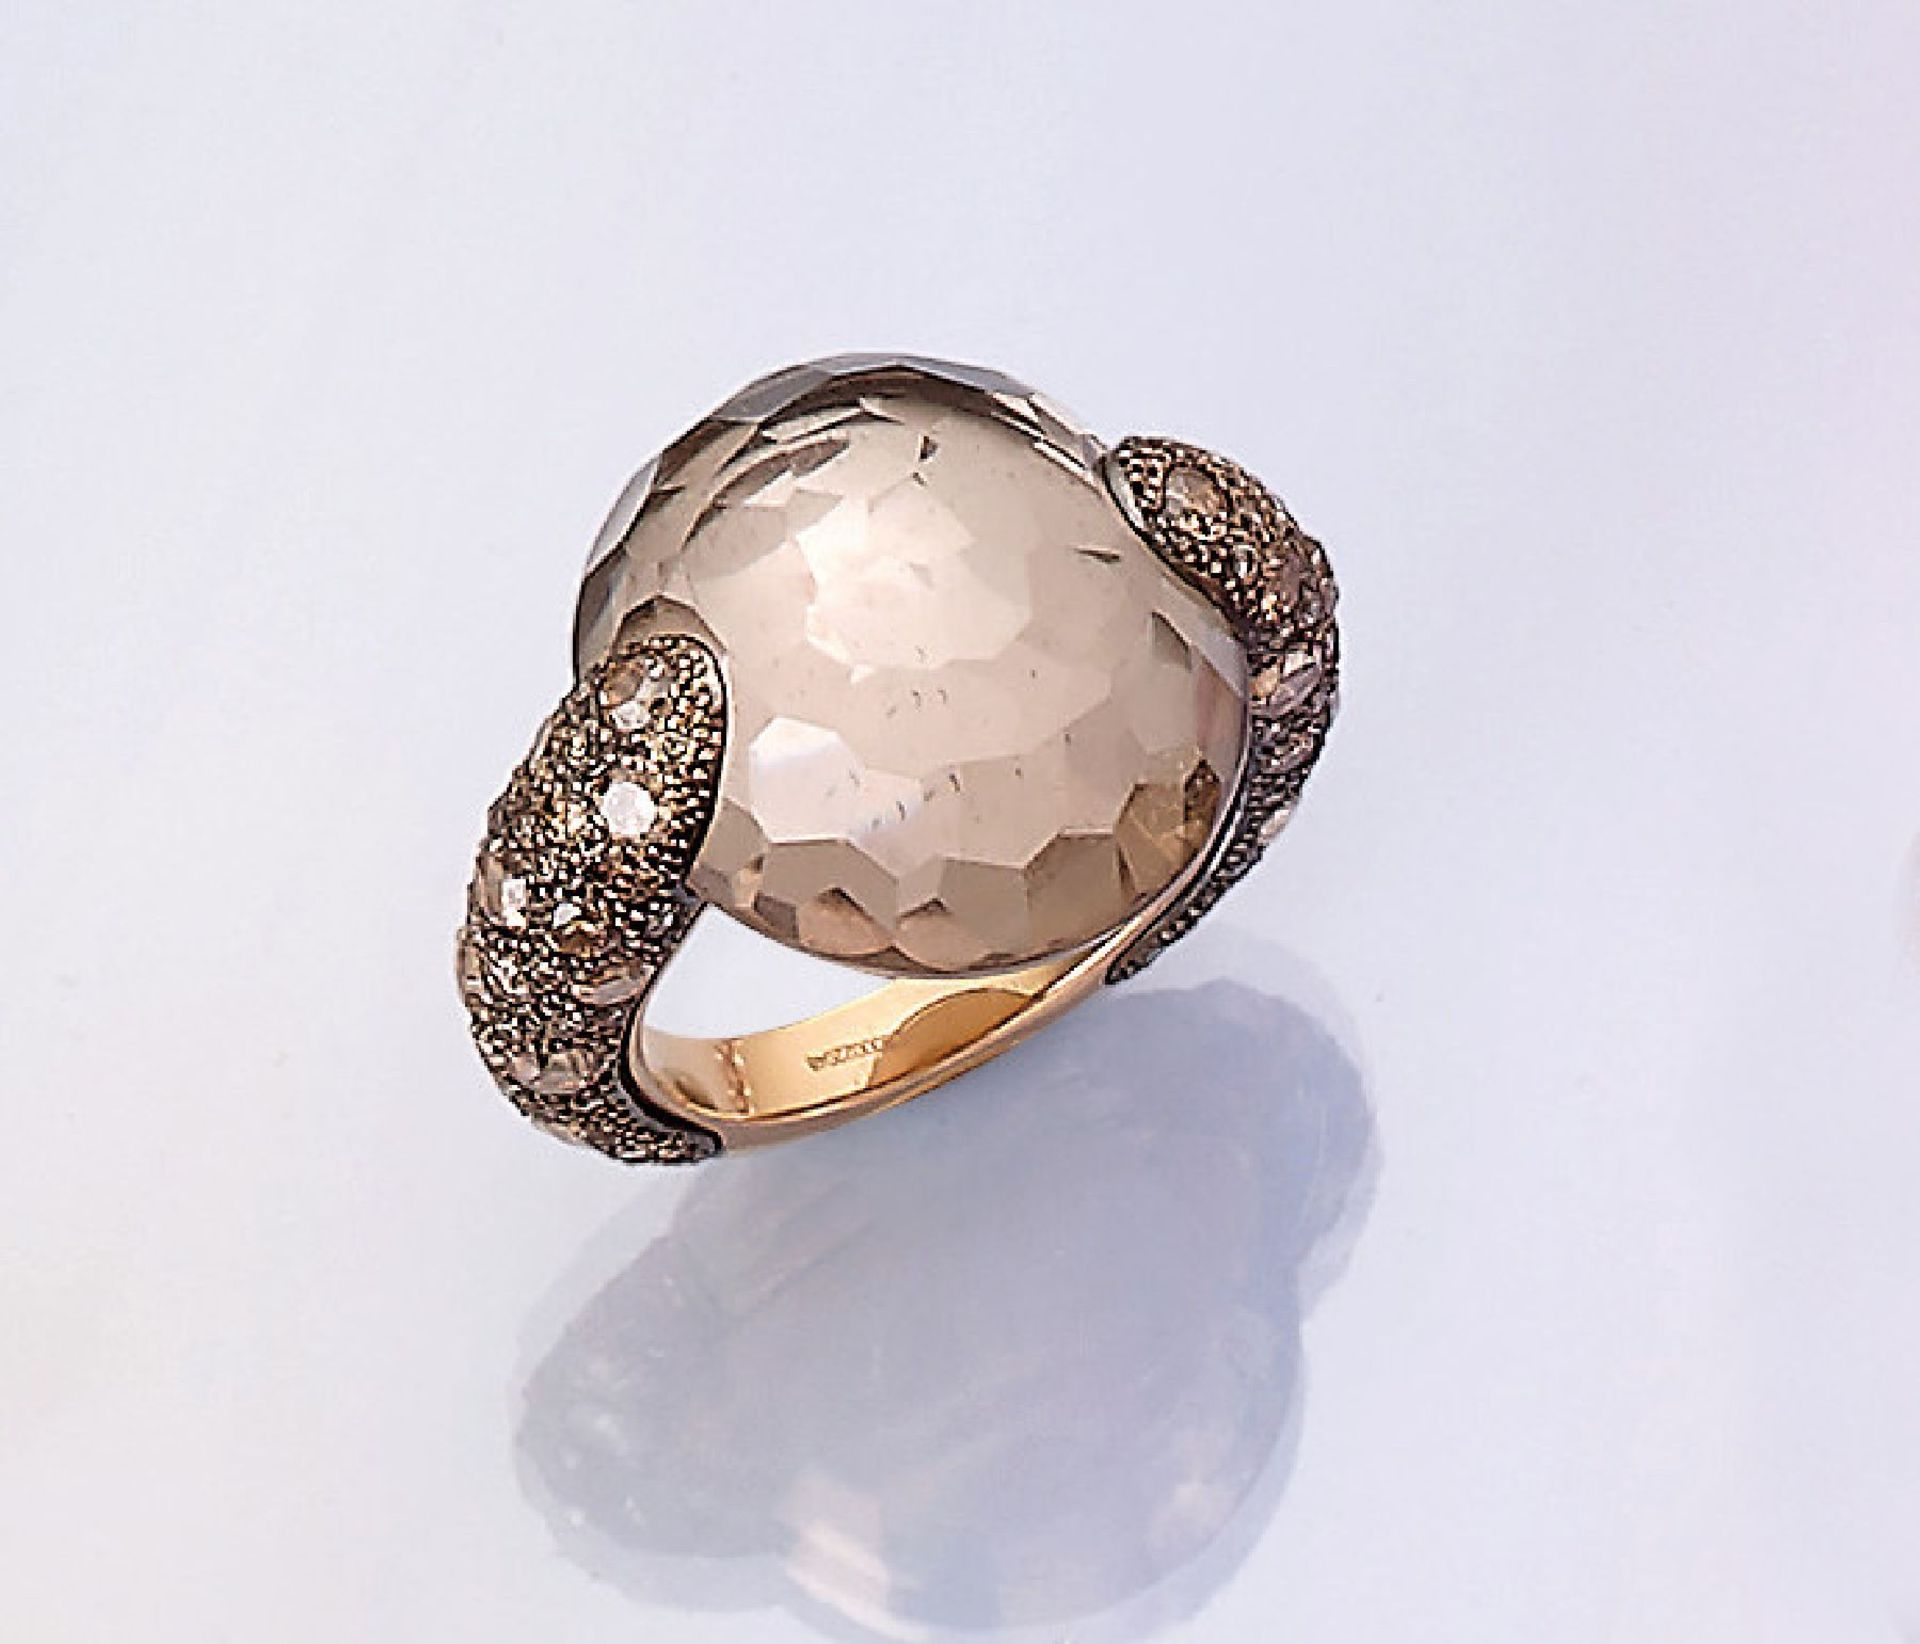 Los 31502 - 18 kt gold POMELLATO ring with smoky quartz and diamonds , Rose G 750/000, bevelled smoky quartz